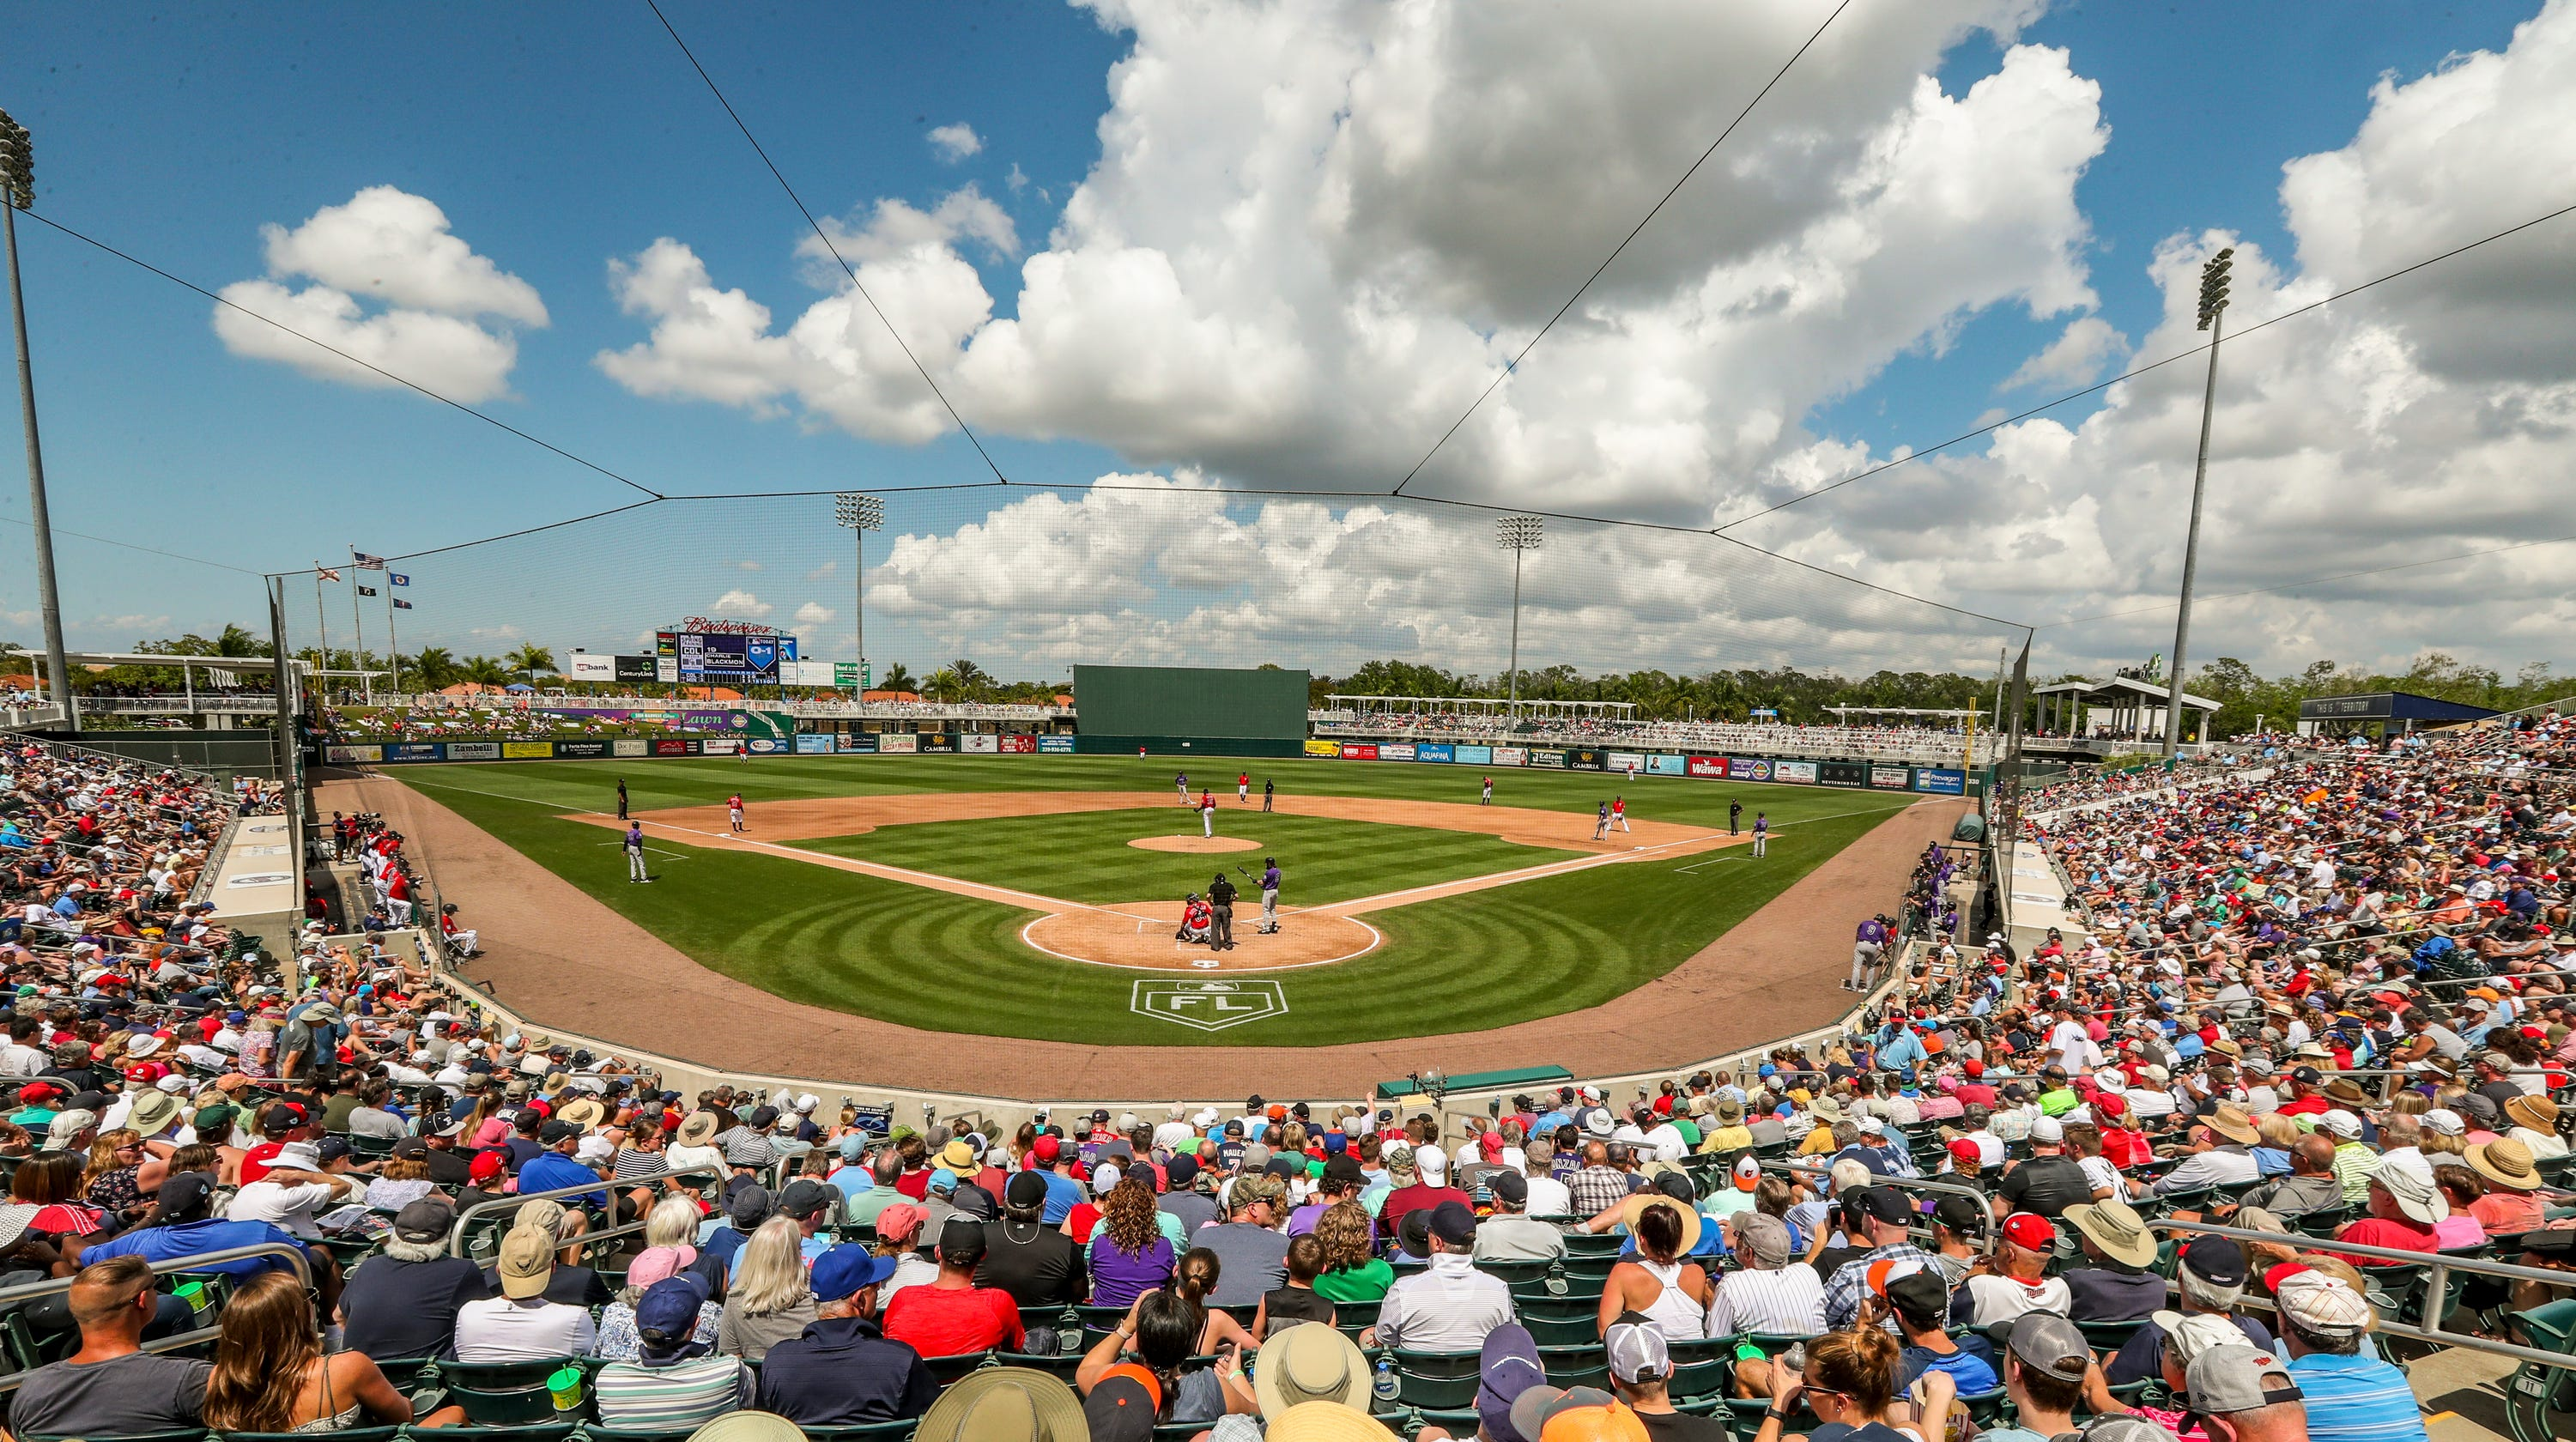 Mn Twins 2020 Schedule Boston Red Sox, Minnesota Twins release 2020 spring training schedules